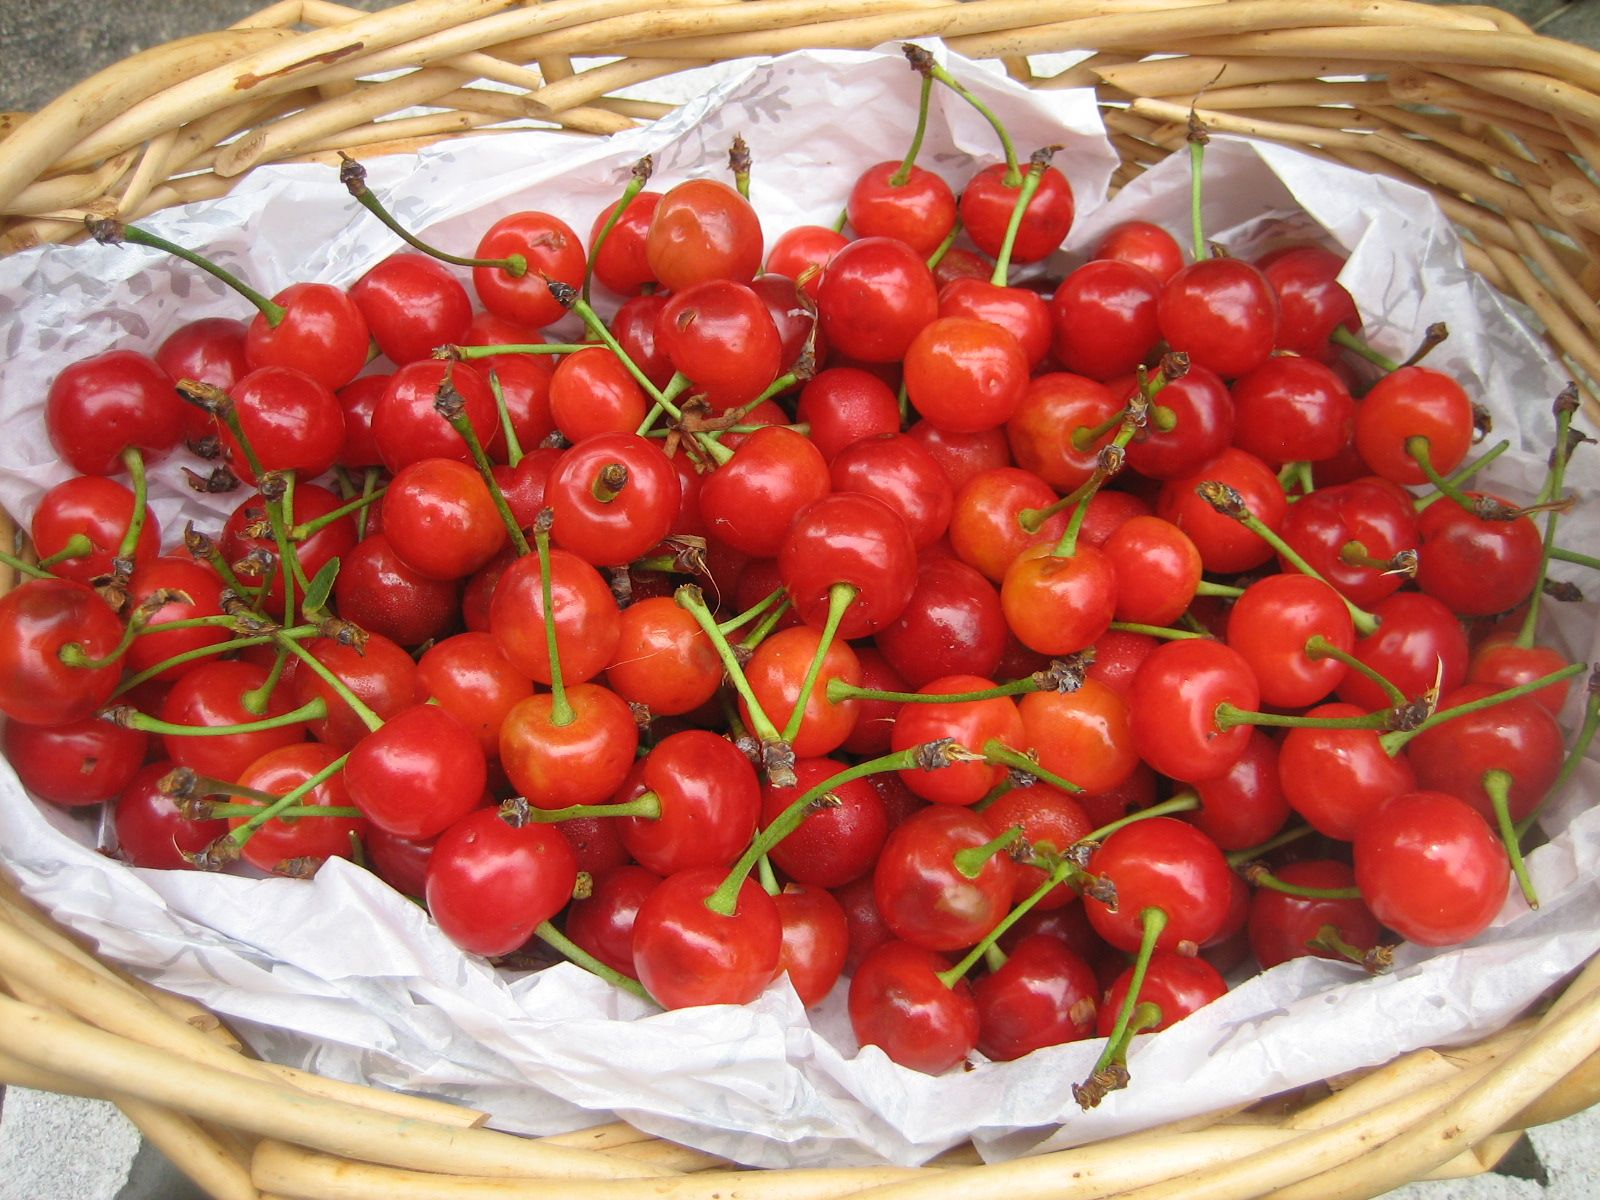 Beautiful sour cherries  One of my chores was picking them for my